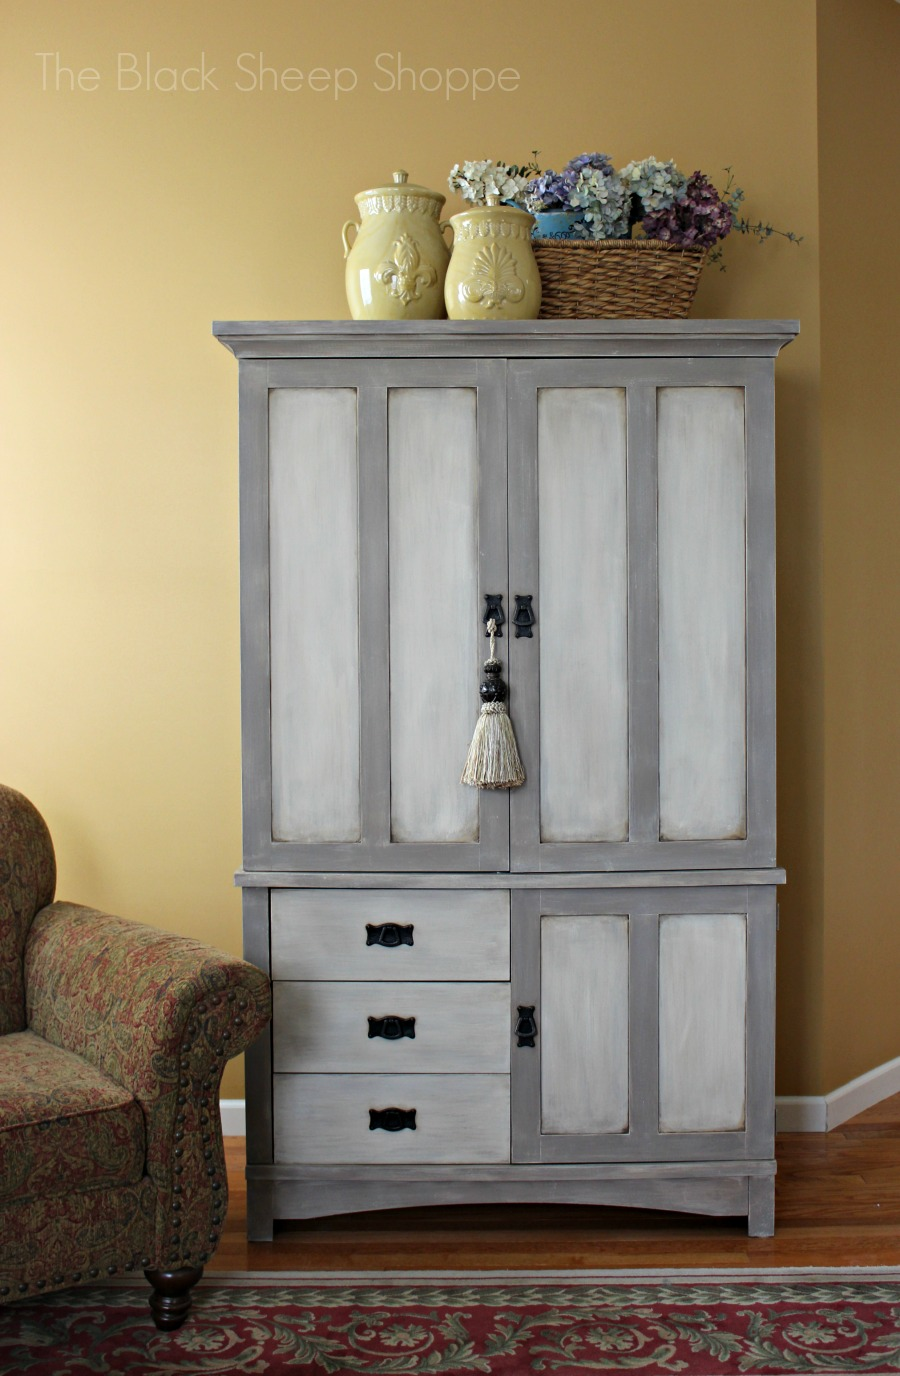 Painted 1990s TV armoire